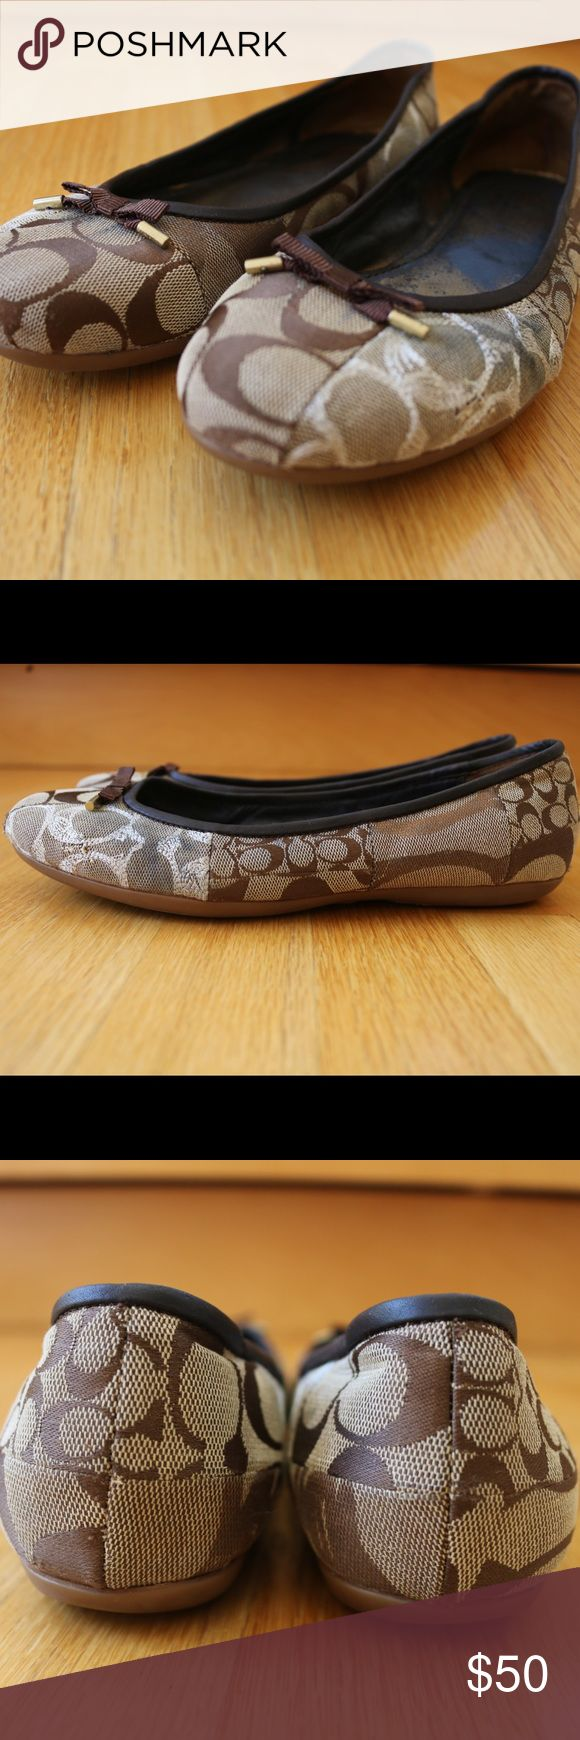 Coach flats Comfy brown Coach logo flats. Worn but I n good condition and definitely worthy of another home! Coach Shoes Flats & Loafers